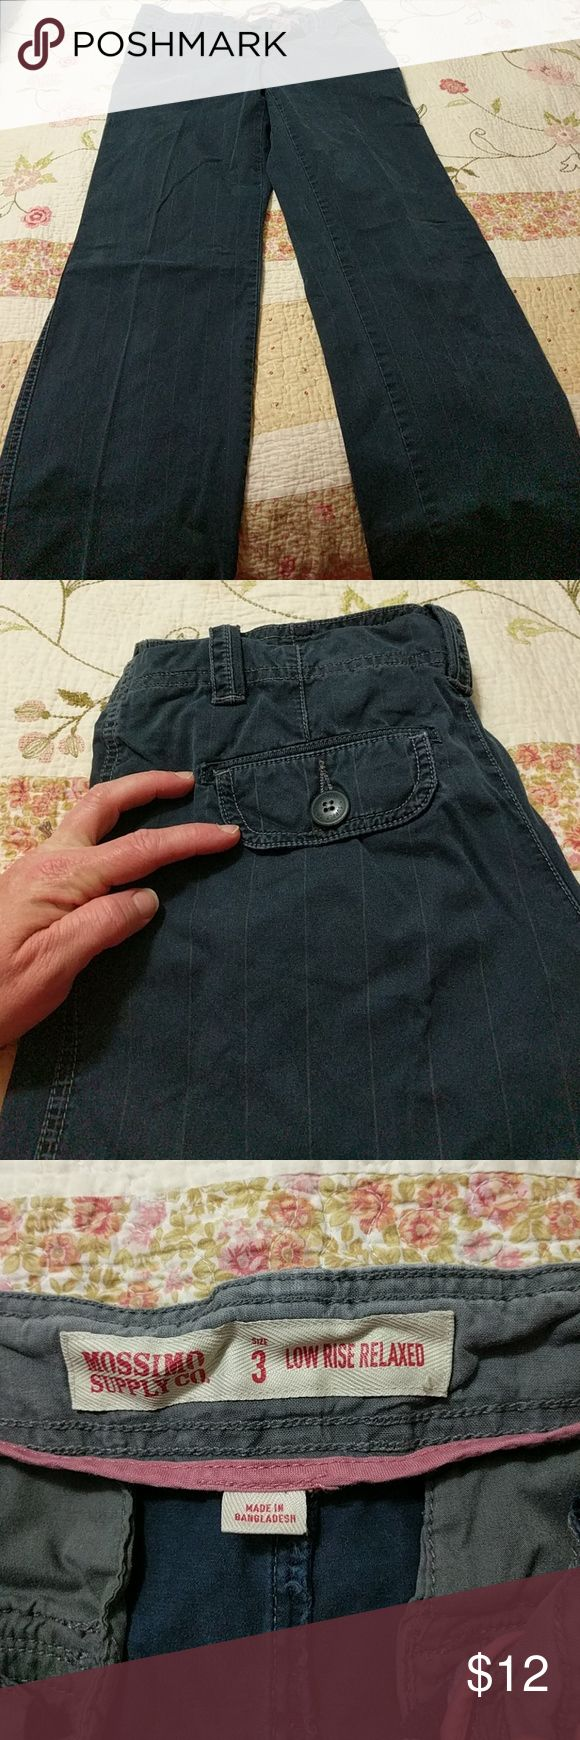 Navy blue dress pants Navy blue pinstripe dress pants excellent condition size 3 Mossimo Supply Co Pants Straight Leg